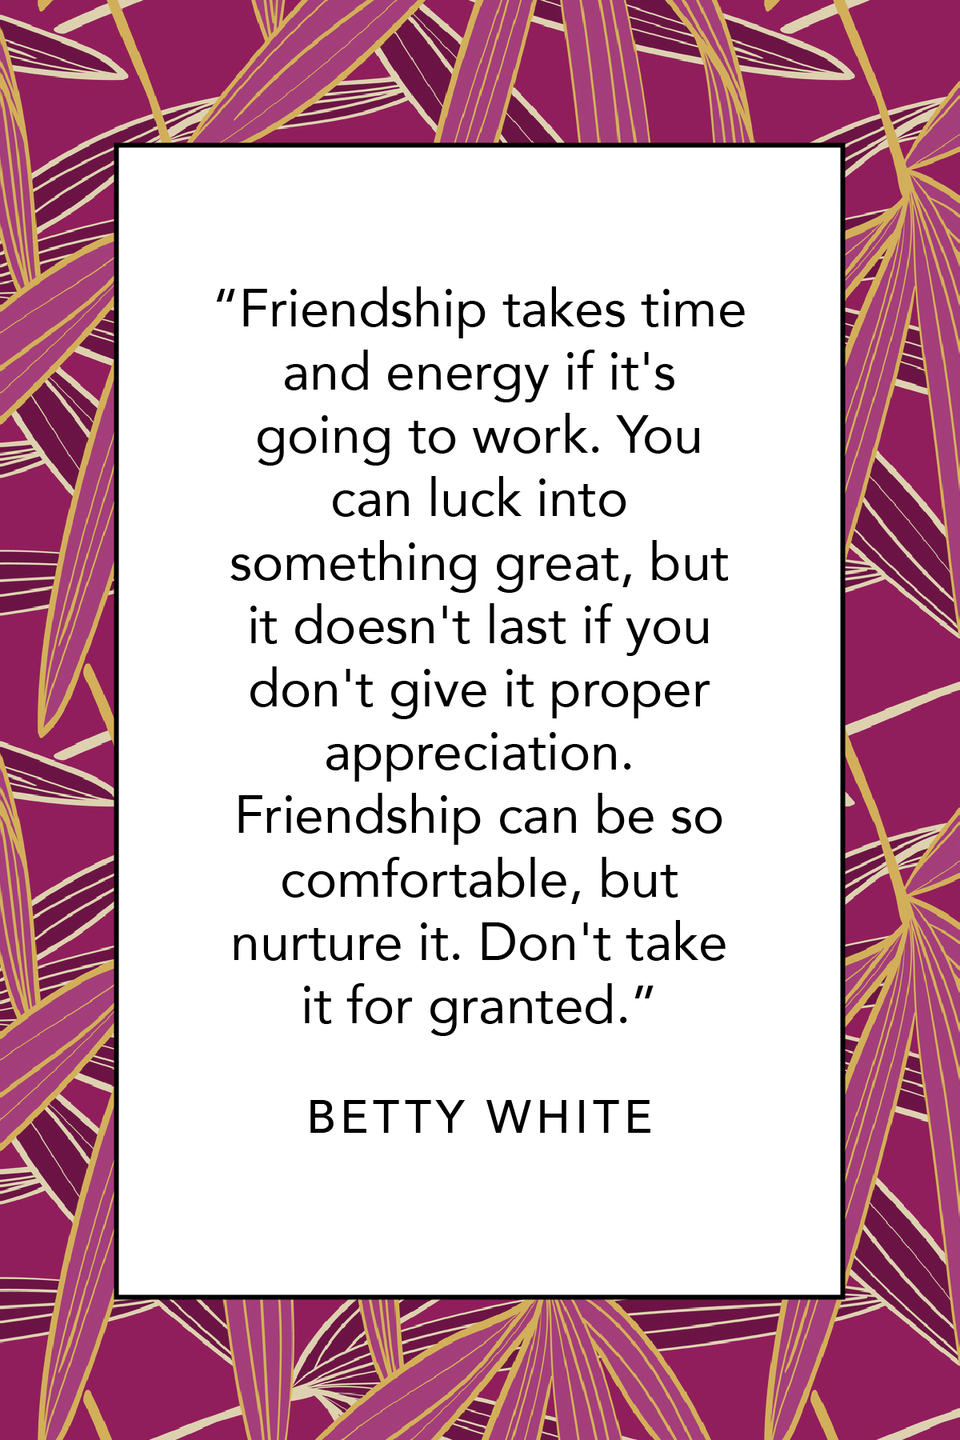 """<p>""""Friendship takes time and energy if it's going to work. You can luck into something great, but it doesn't last if you don't give it proper appreciation. Friendship can be so comfortable, but nurture it. Don't take it for granted,"""" Betty White wrote about friendship in her <em>New York Times </em>bestselling book <em><a href=""""https://www.amazon.com/If-You-Ask-Me-Course/dp/0425245284?tag=syn-yahoo-20&ascsubtag=%5Bartid%7C10063.g.35348474%5Bsrc%7Cyahoo-us"""" rel=""""nofollow noopener"""" target=""""_blank"""" data-ylk=""""slk:If You Ask Me: (And of Course You Won't)."""" class=""""link rapid-noclick-resp"""">If You Ask Me: (And of Course You Won't).</a></em></p>"""